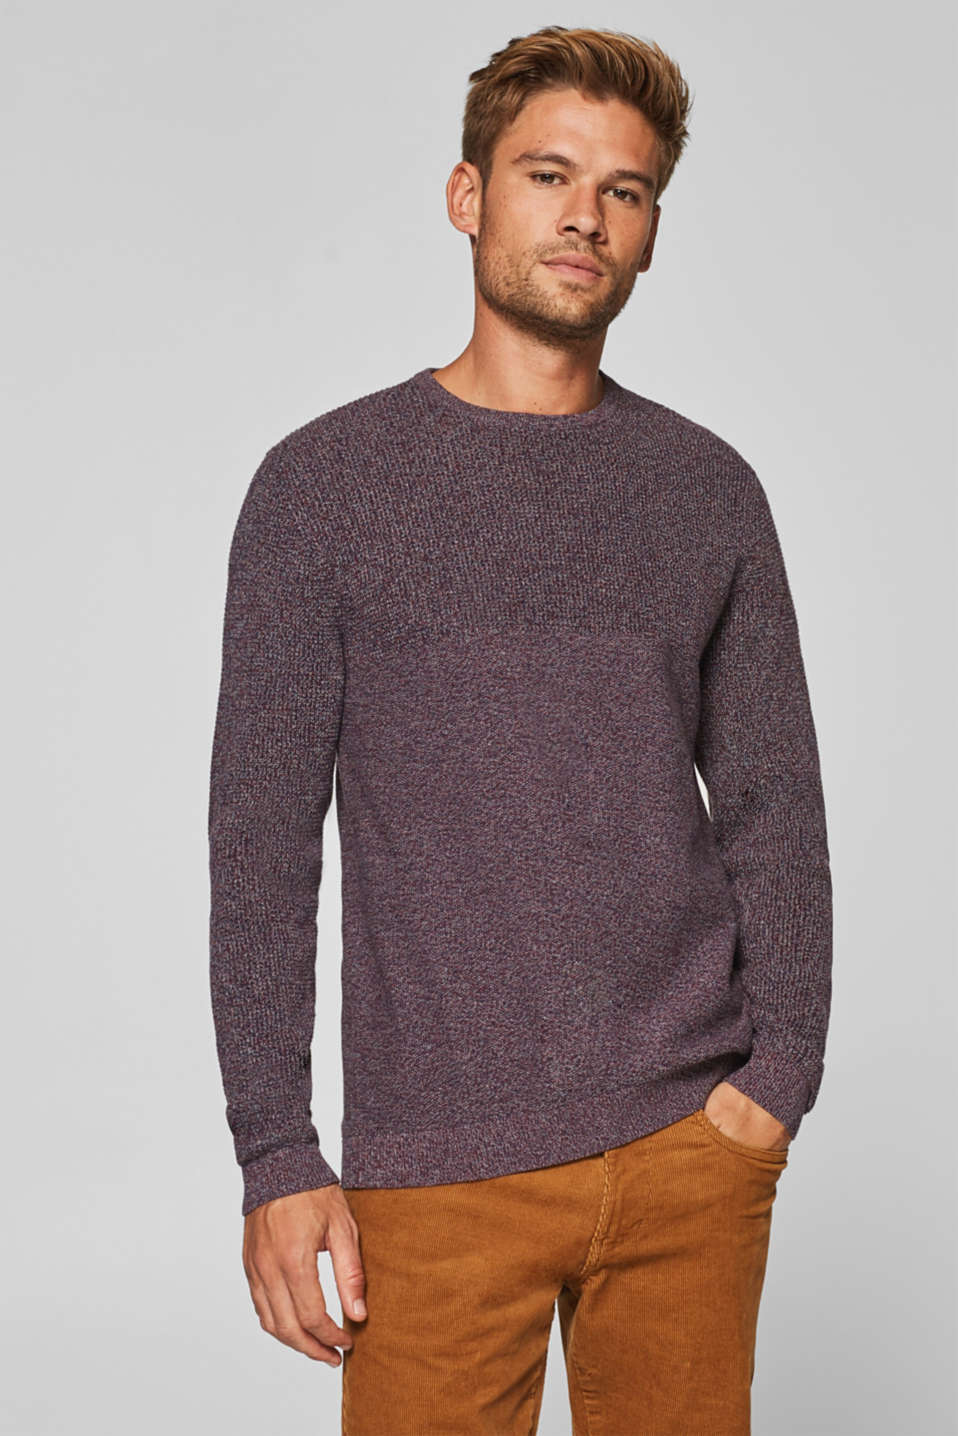 edc - Jumper with a mix of textures, 100% cotton